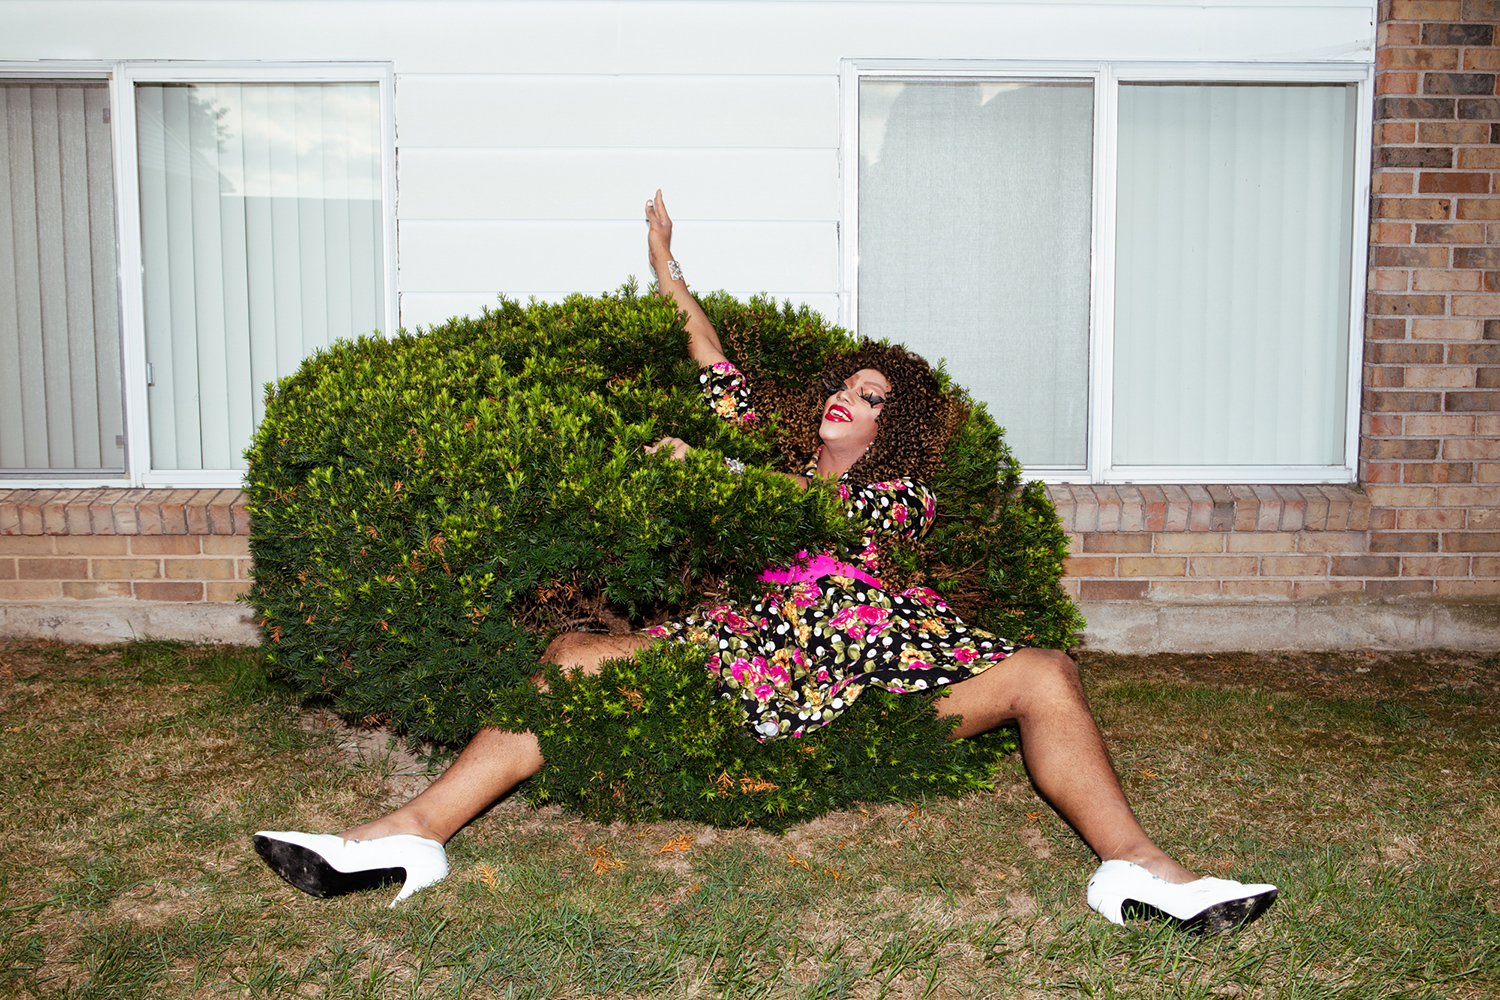 A dress-clad woman sitting in a bush.